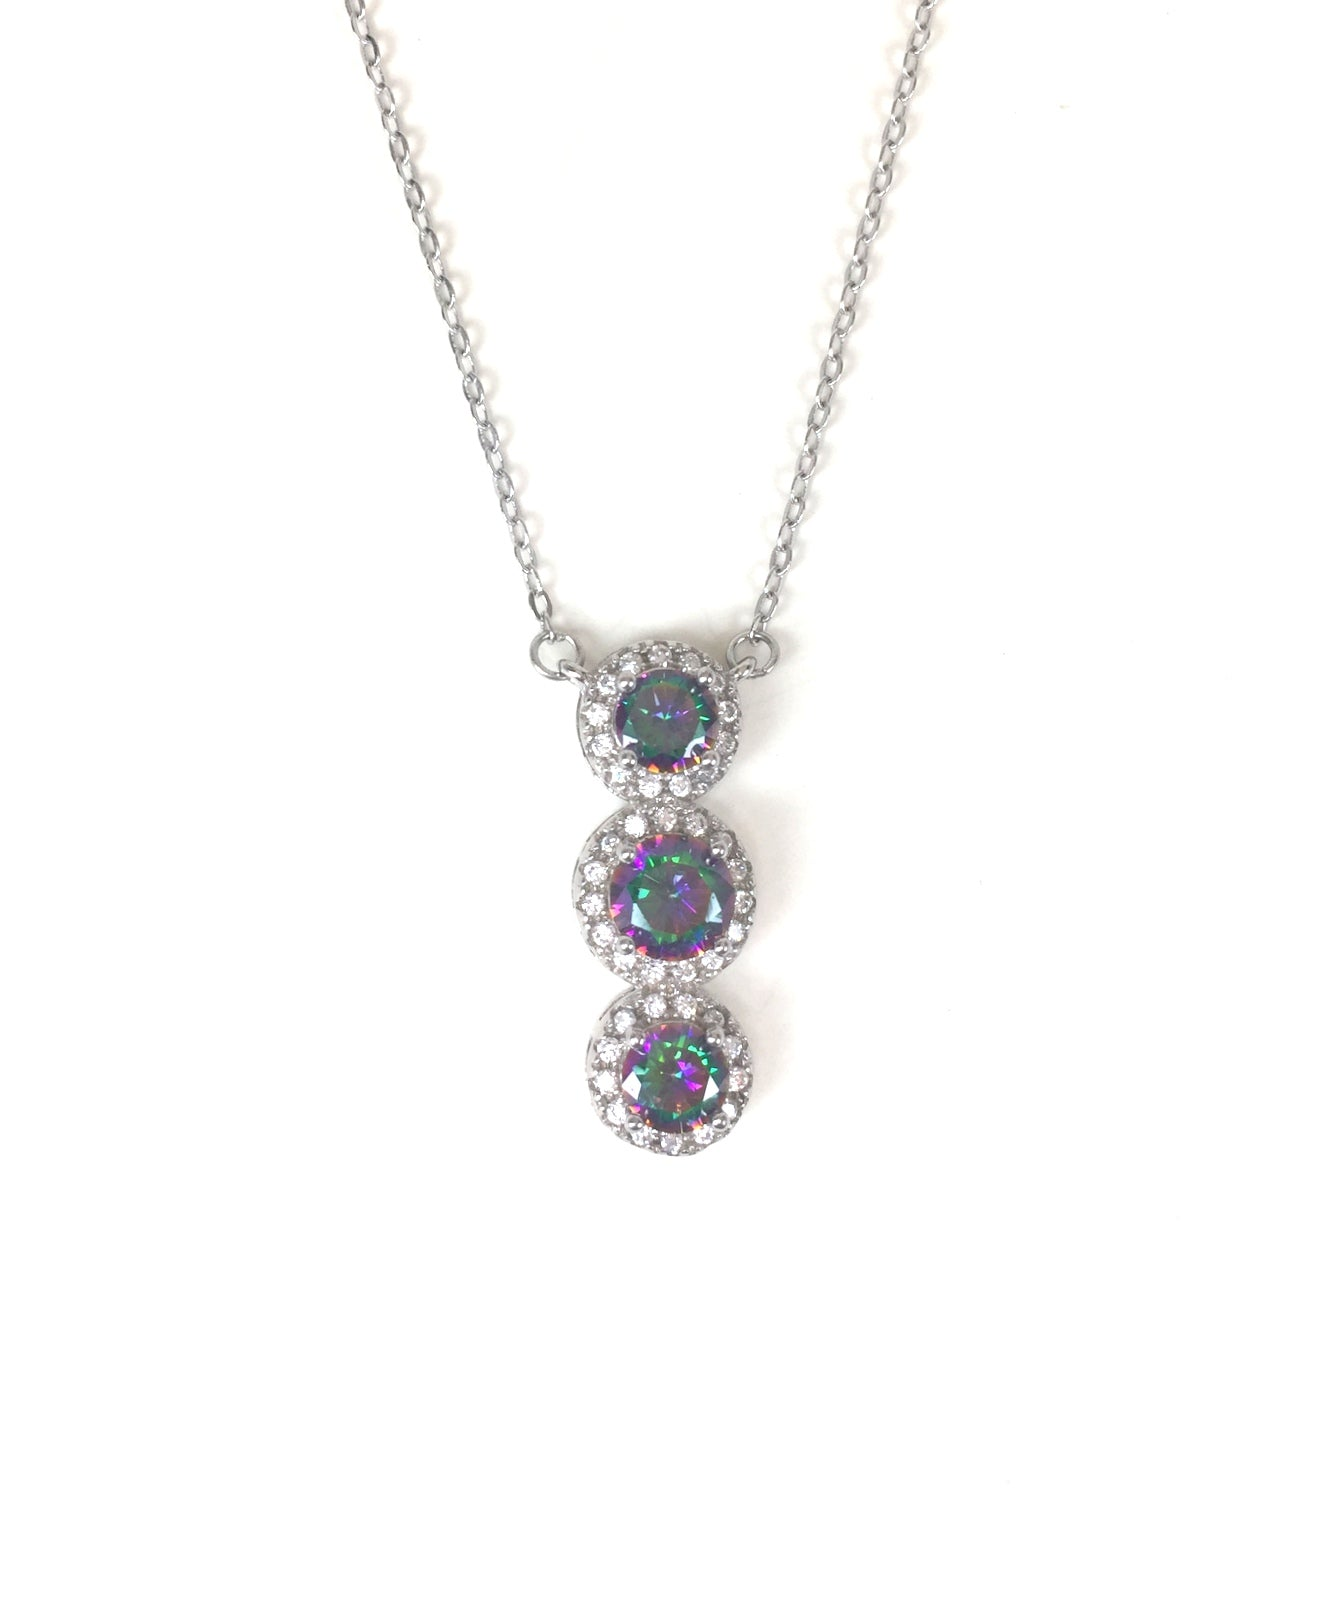 VERTICAL STONES PAVE CZ STERLING SILVER NECKLACE